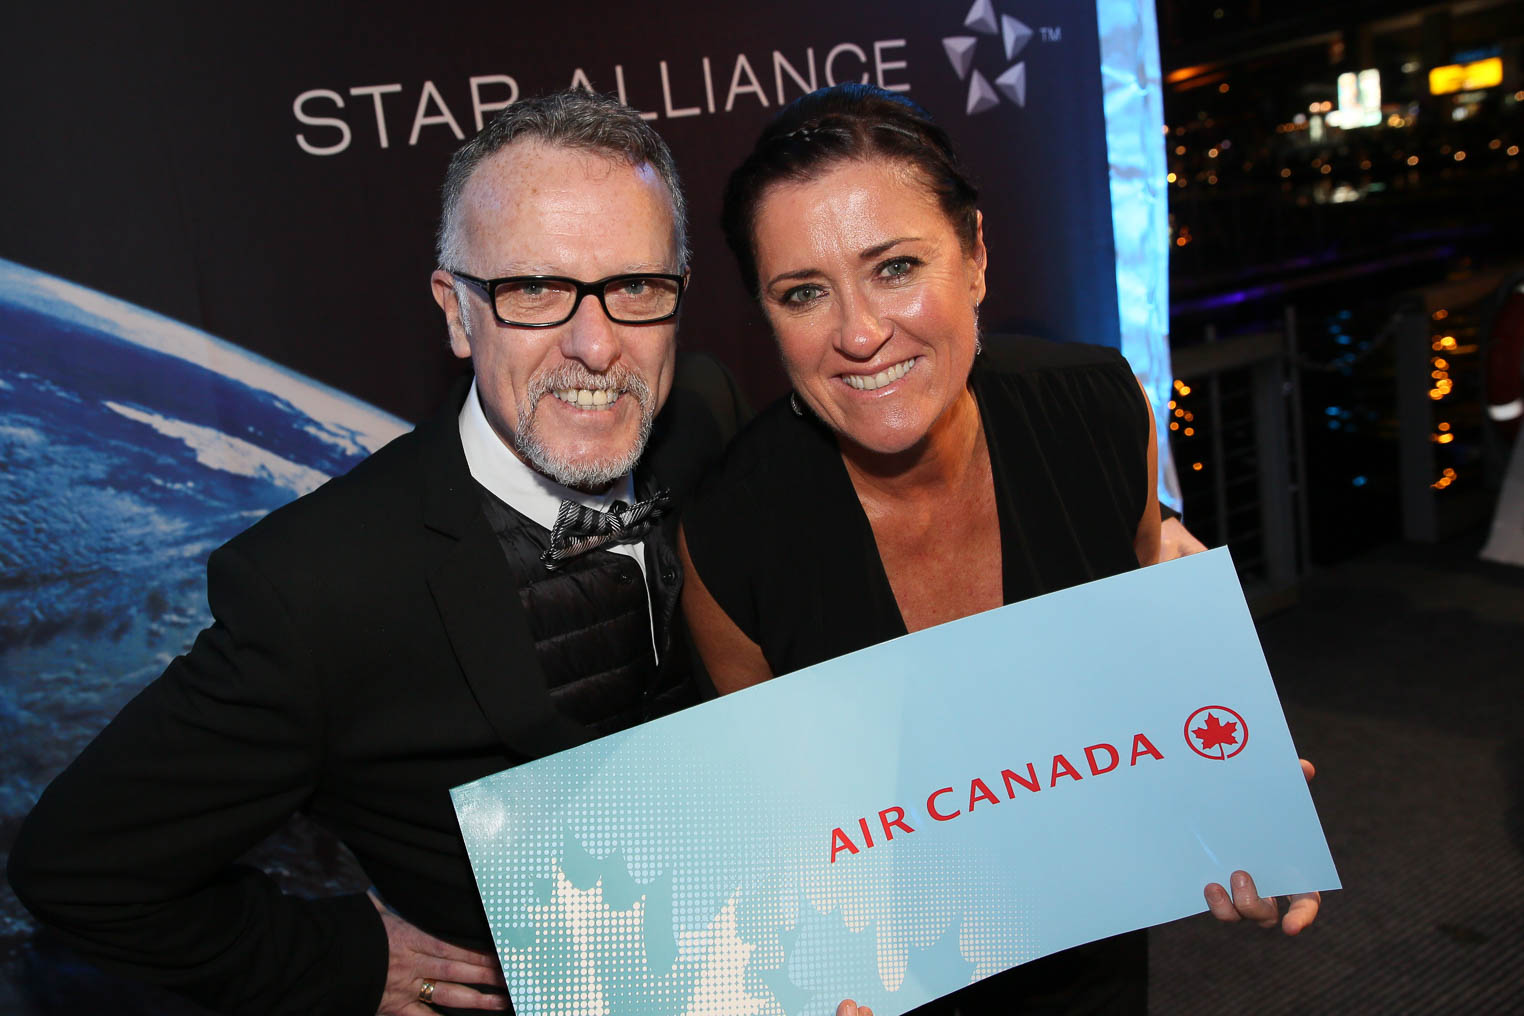 Star Alliance_1_ Scratch and Win_Rick Pomery (Air Canada) and Margaret Sibraa (Intrepid Group)